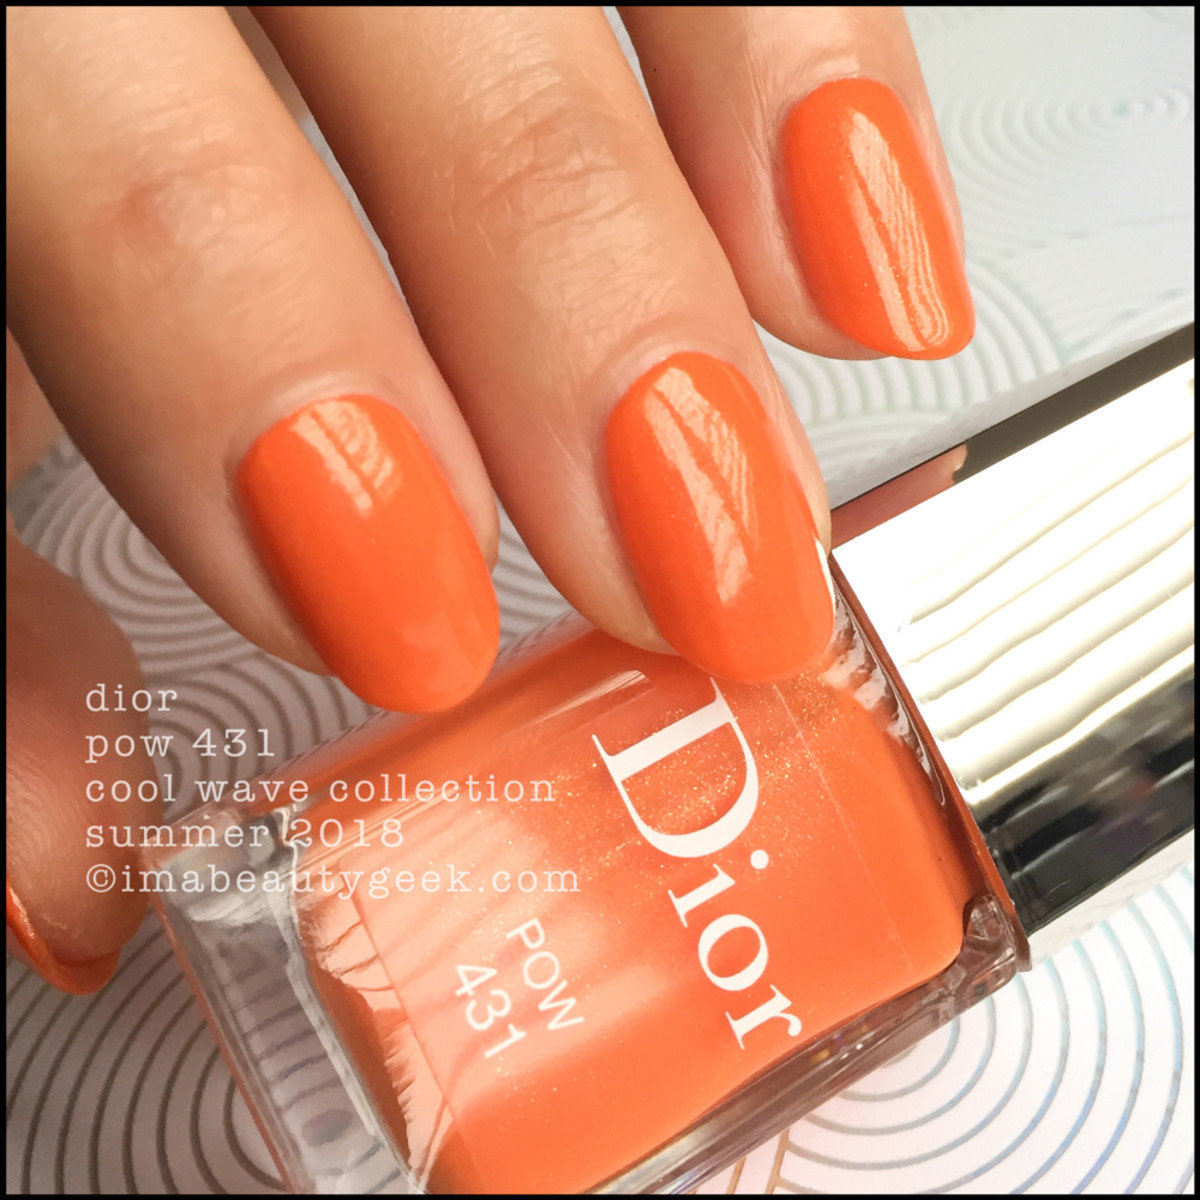 Dior Pow 431 Vernis - Dior Cool Wave Summer 2018